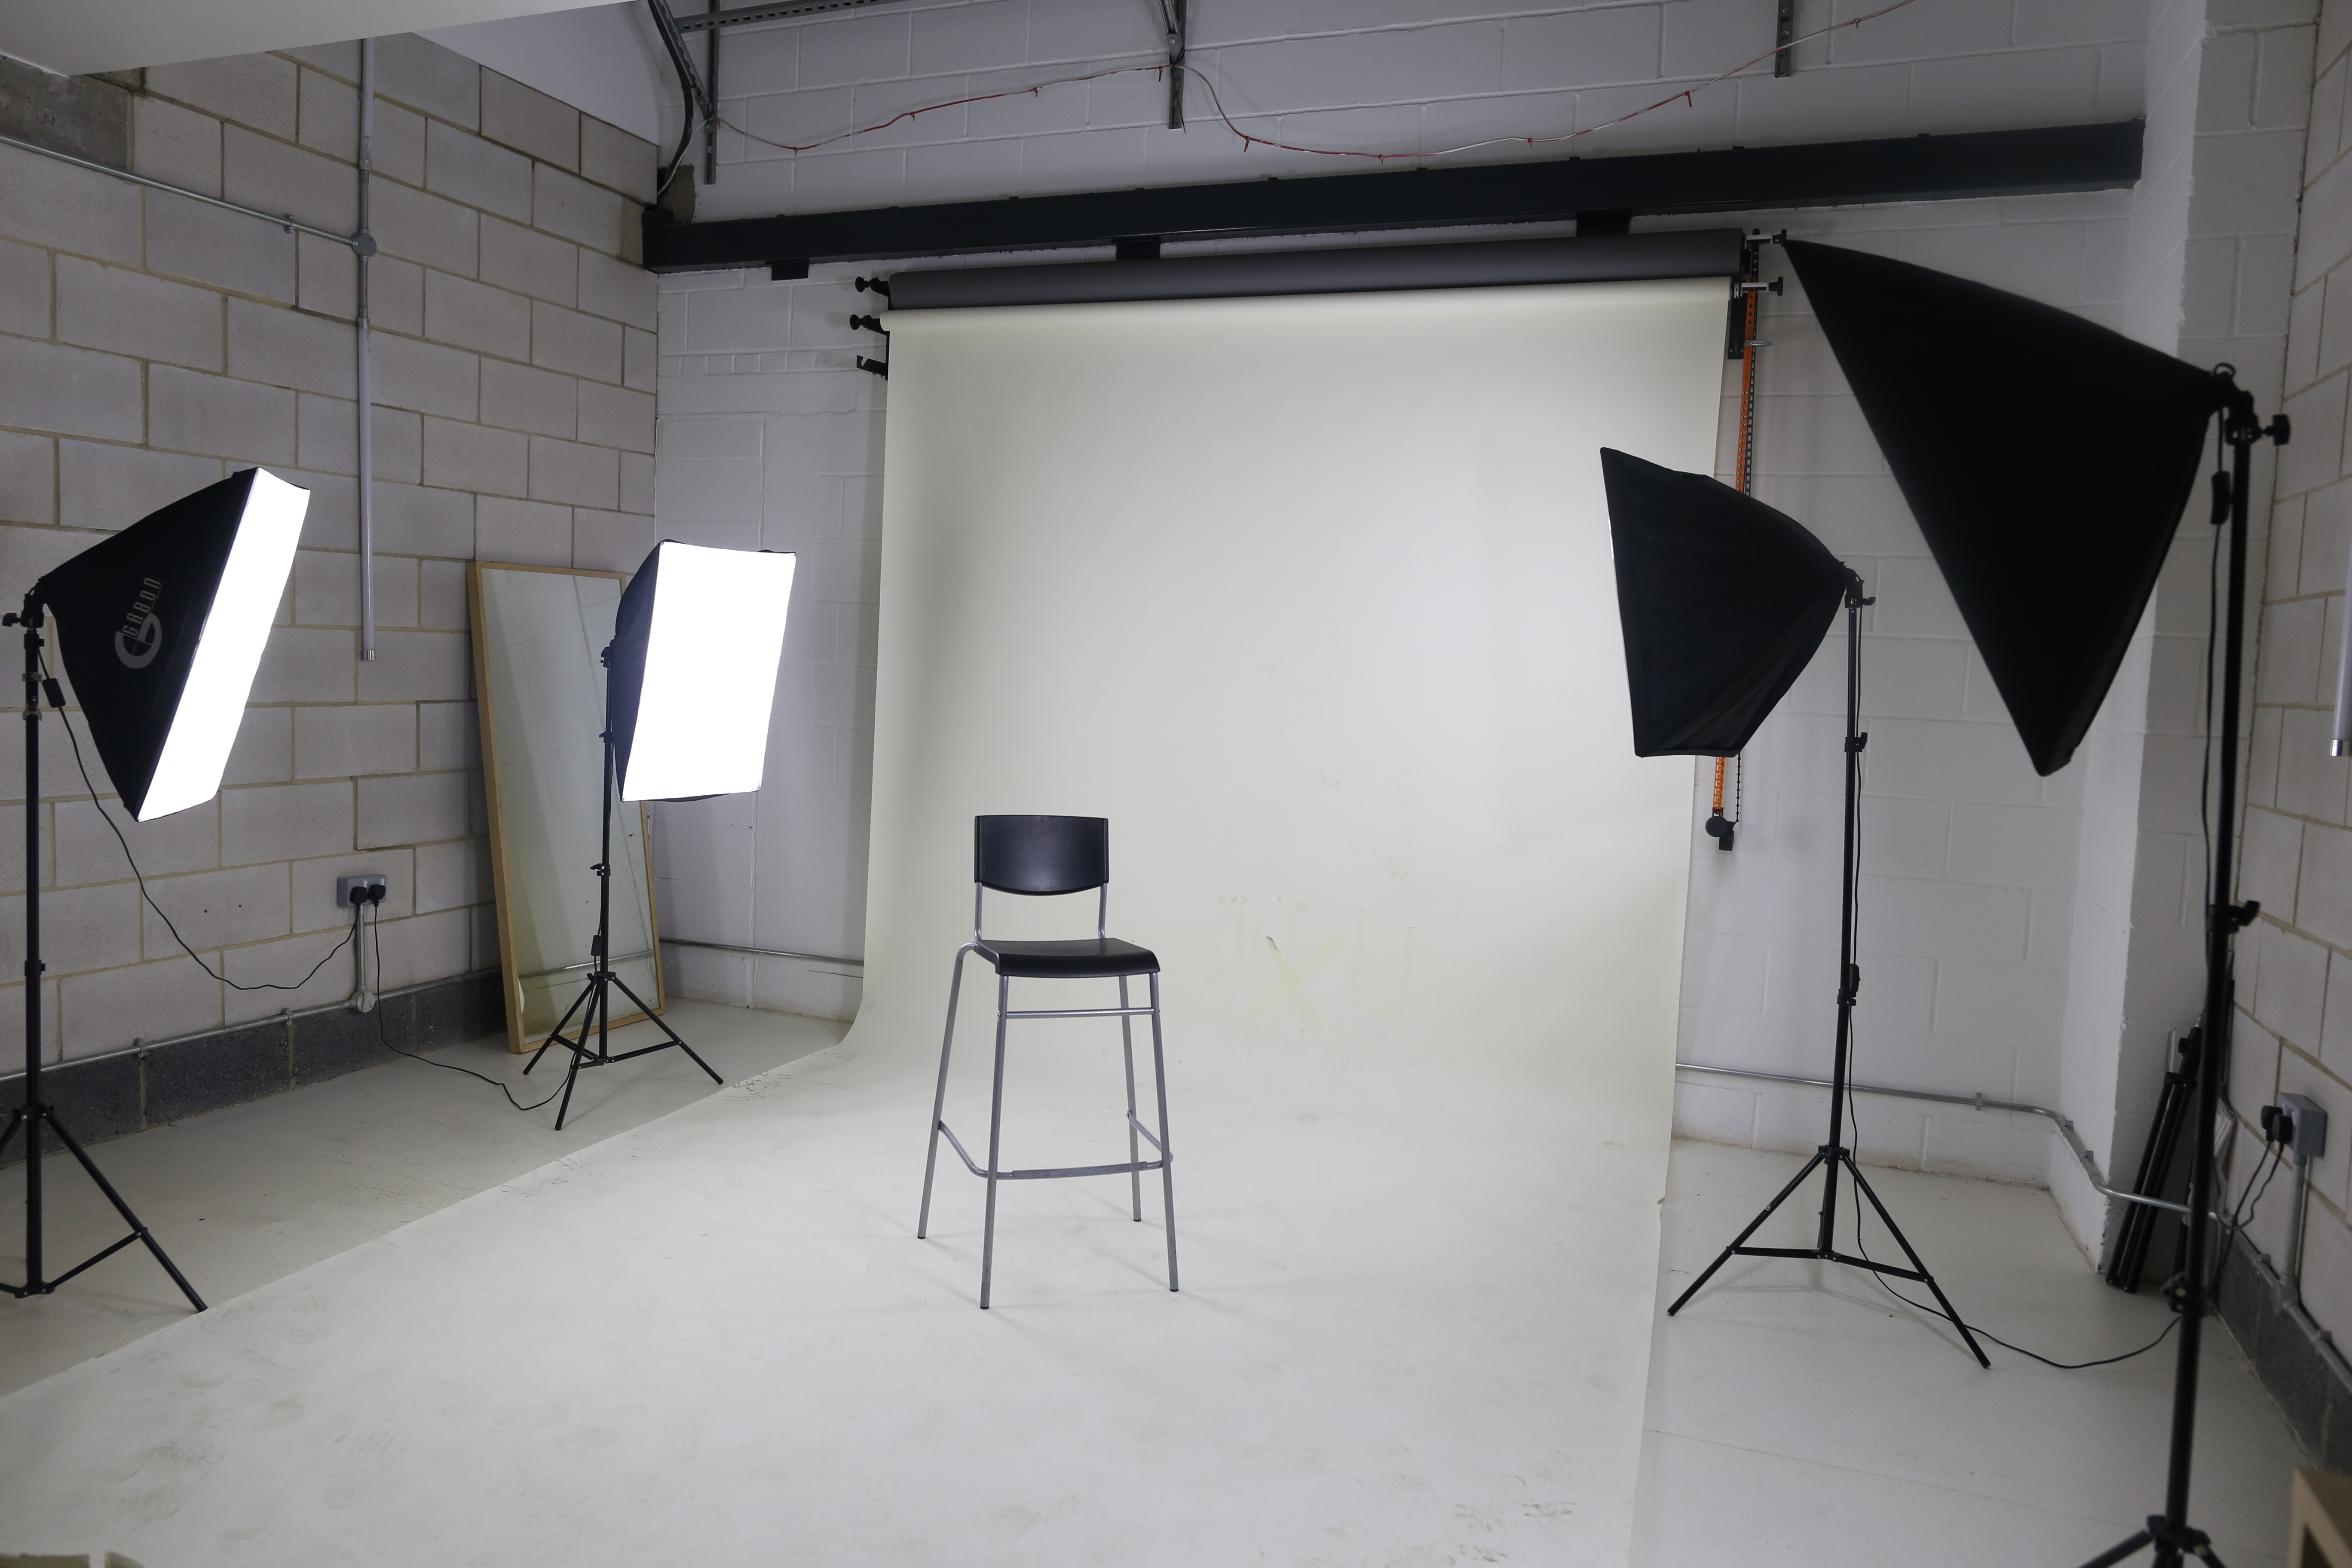 Indra Studio - Hire space in East London